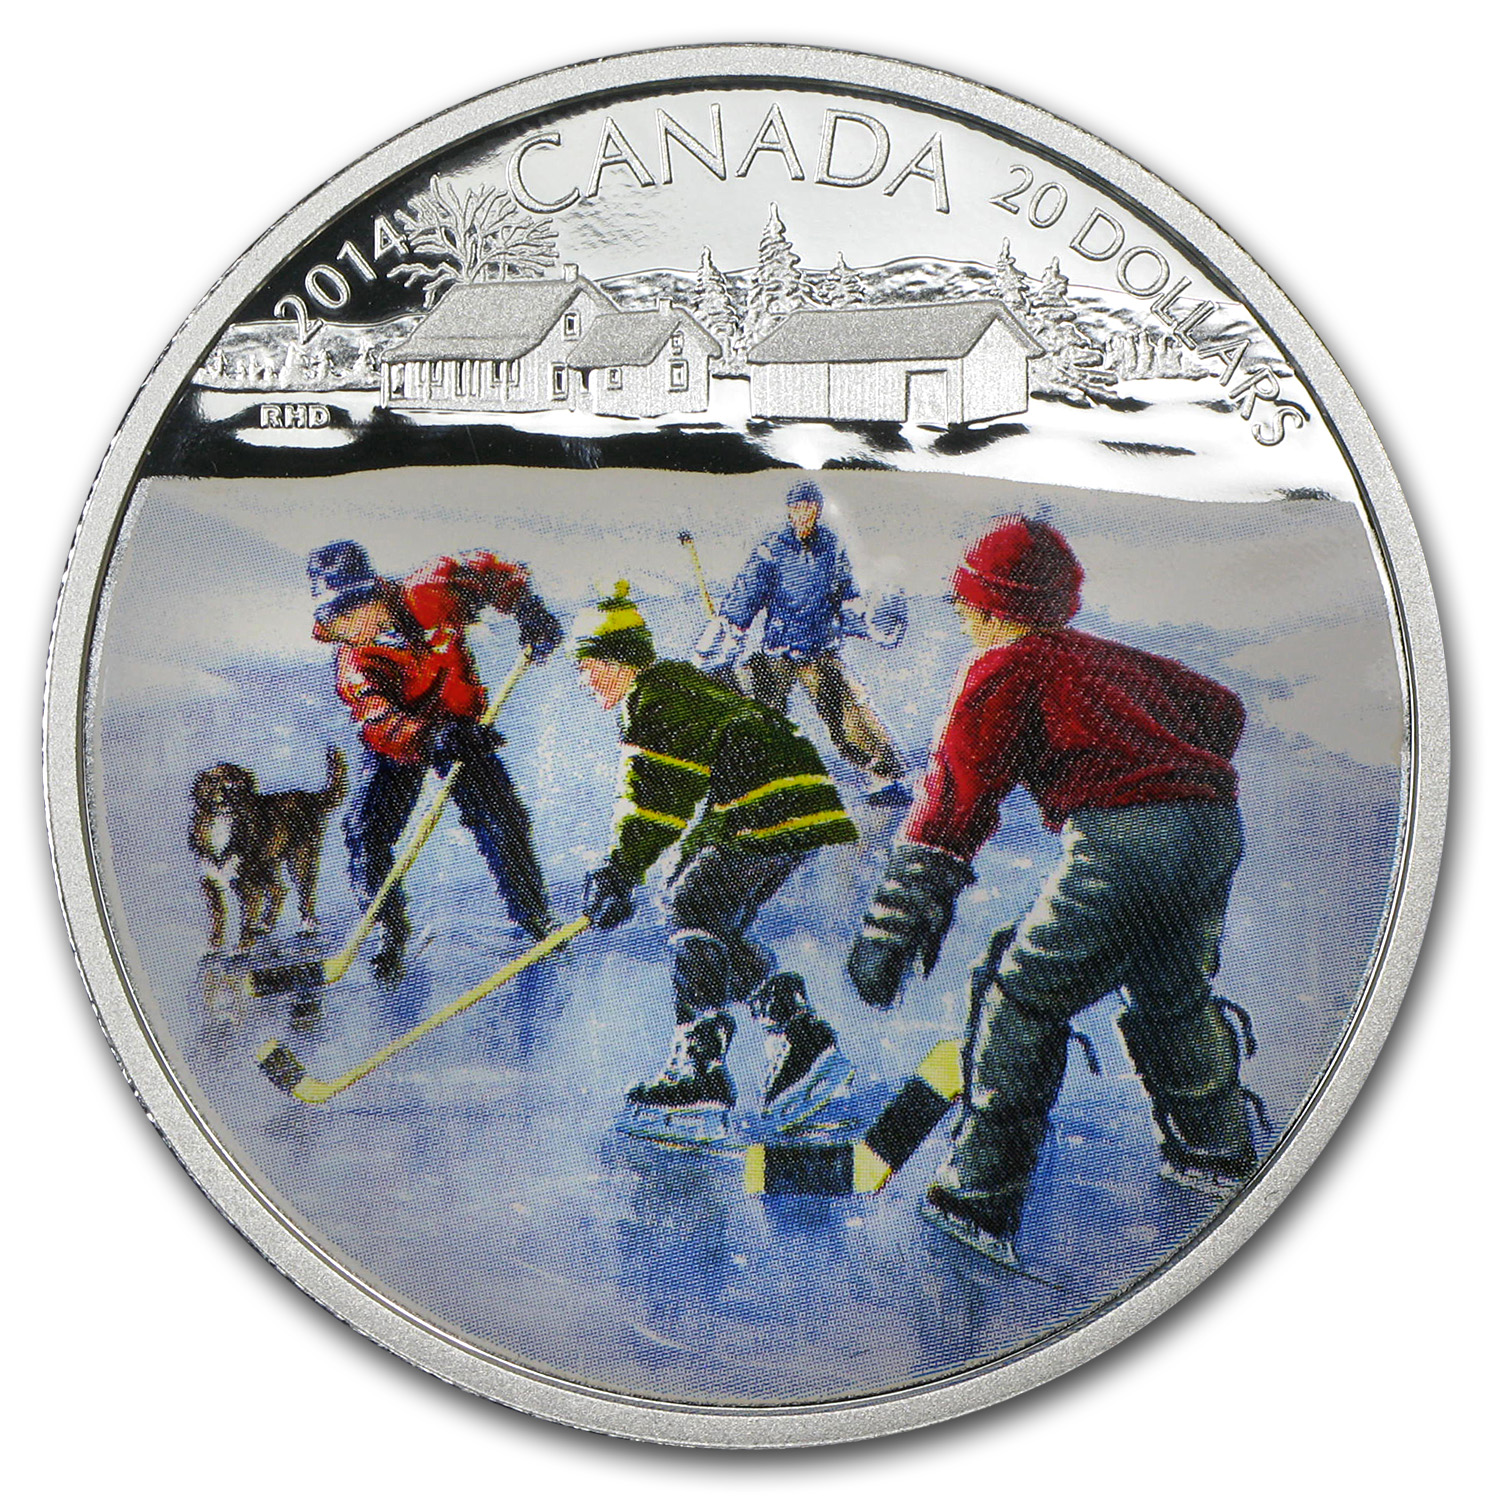 2014 1 oz Silver Canadian $20 - Pond Hockey